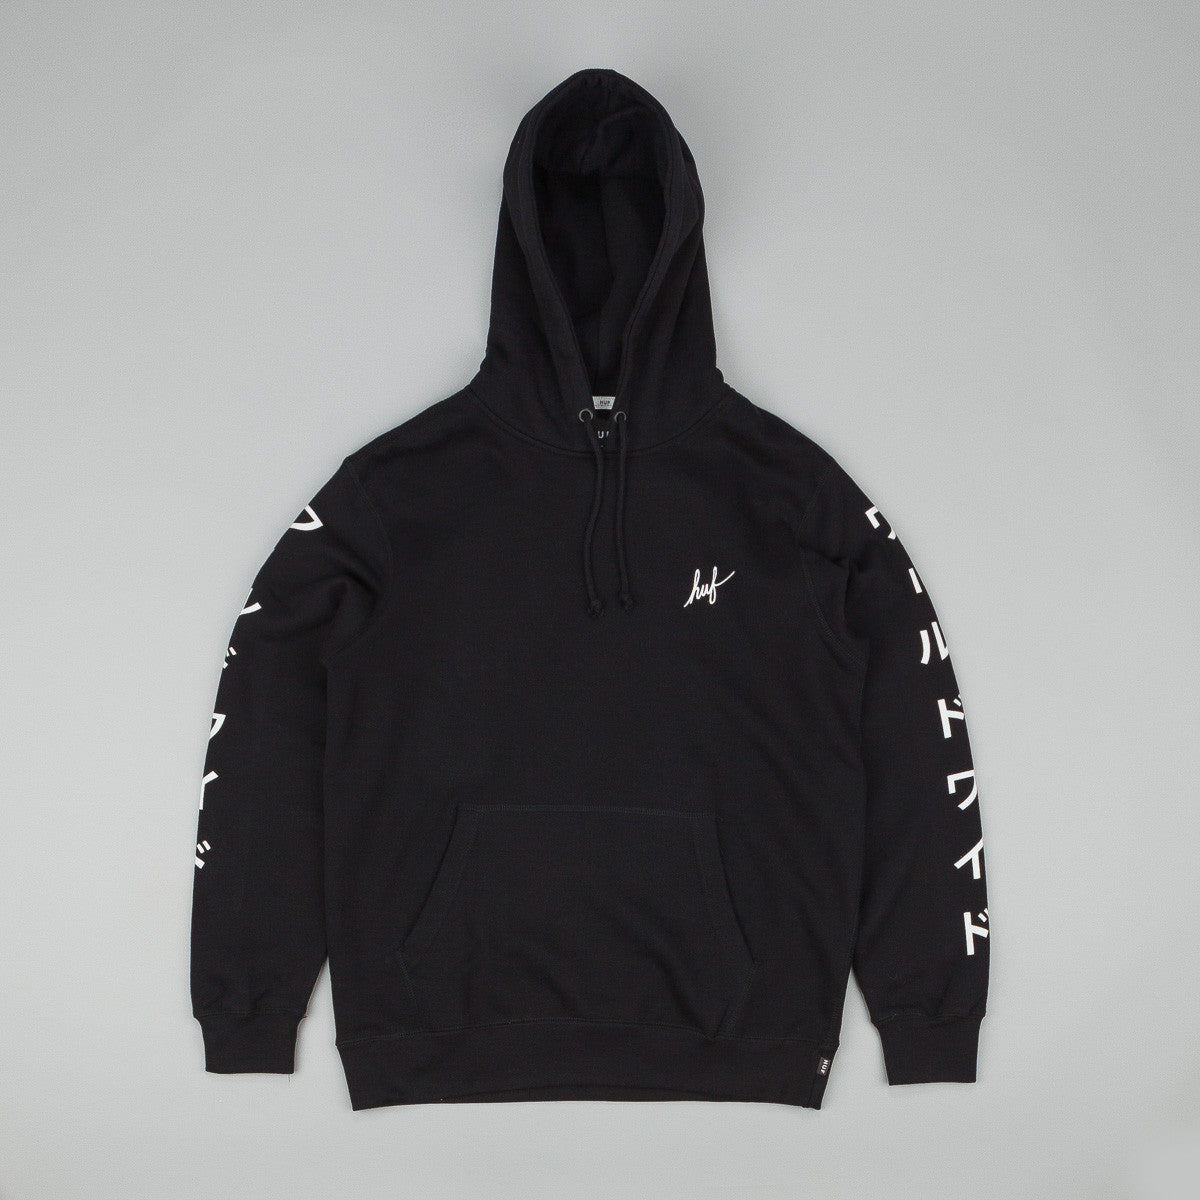 Huf Worldwide Hooded Sweatshirt